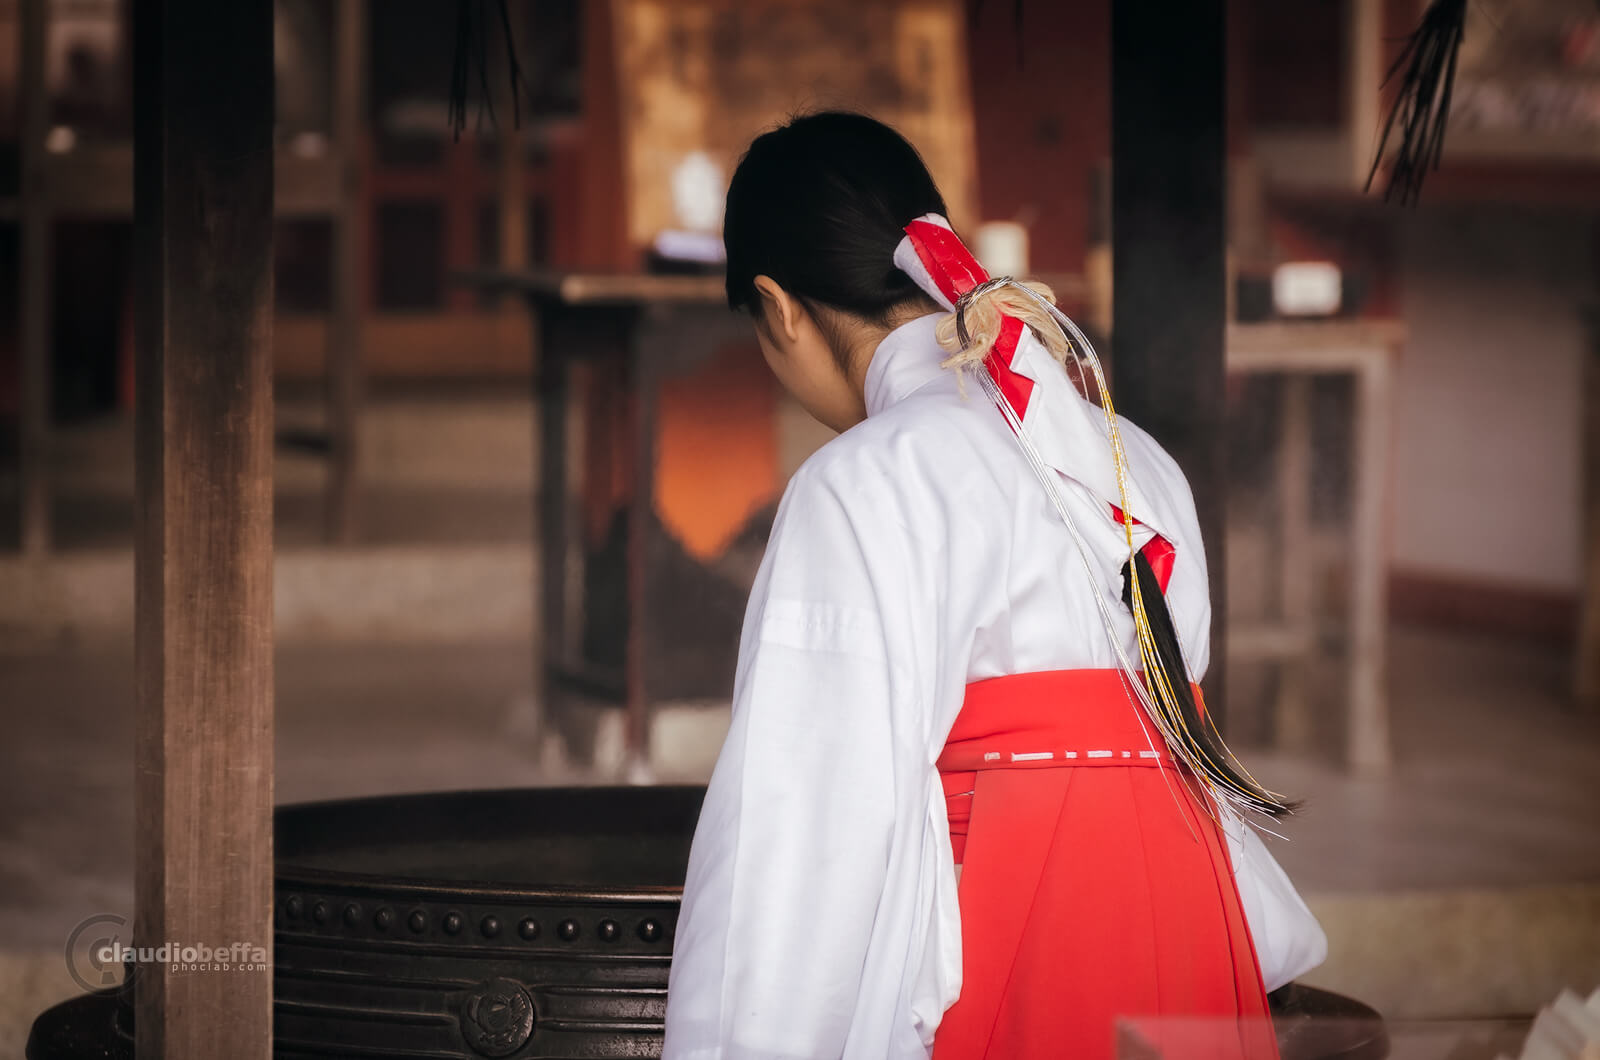 Miko, Miko of Nachi Taisha, Maiden, Priestess, Nachi Taisha, Shrine, Shinto, Culture, Tradition, Kii peninsula, Kumano, Japan